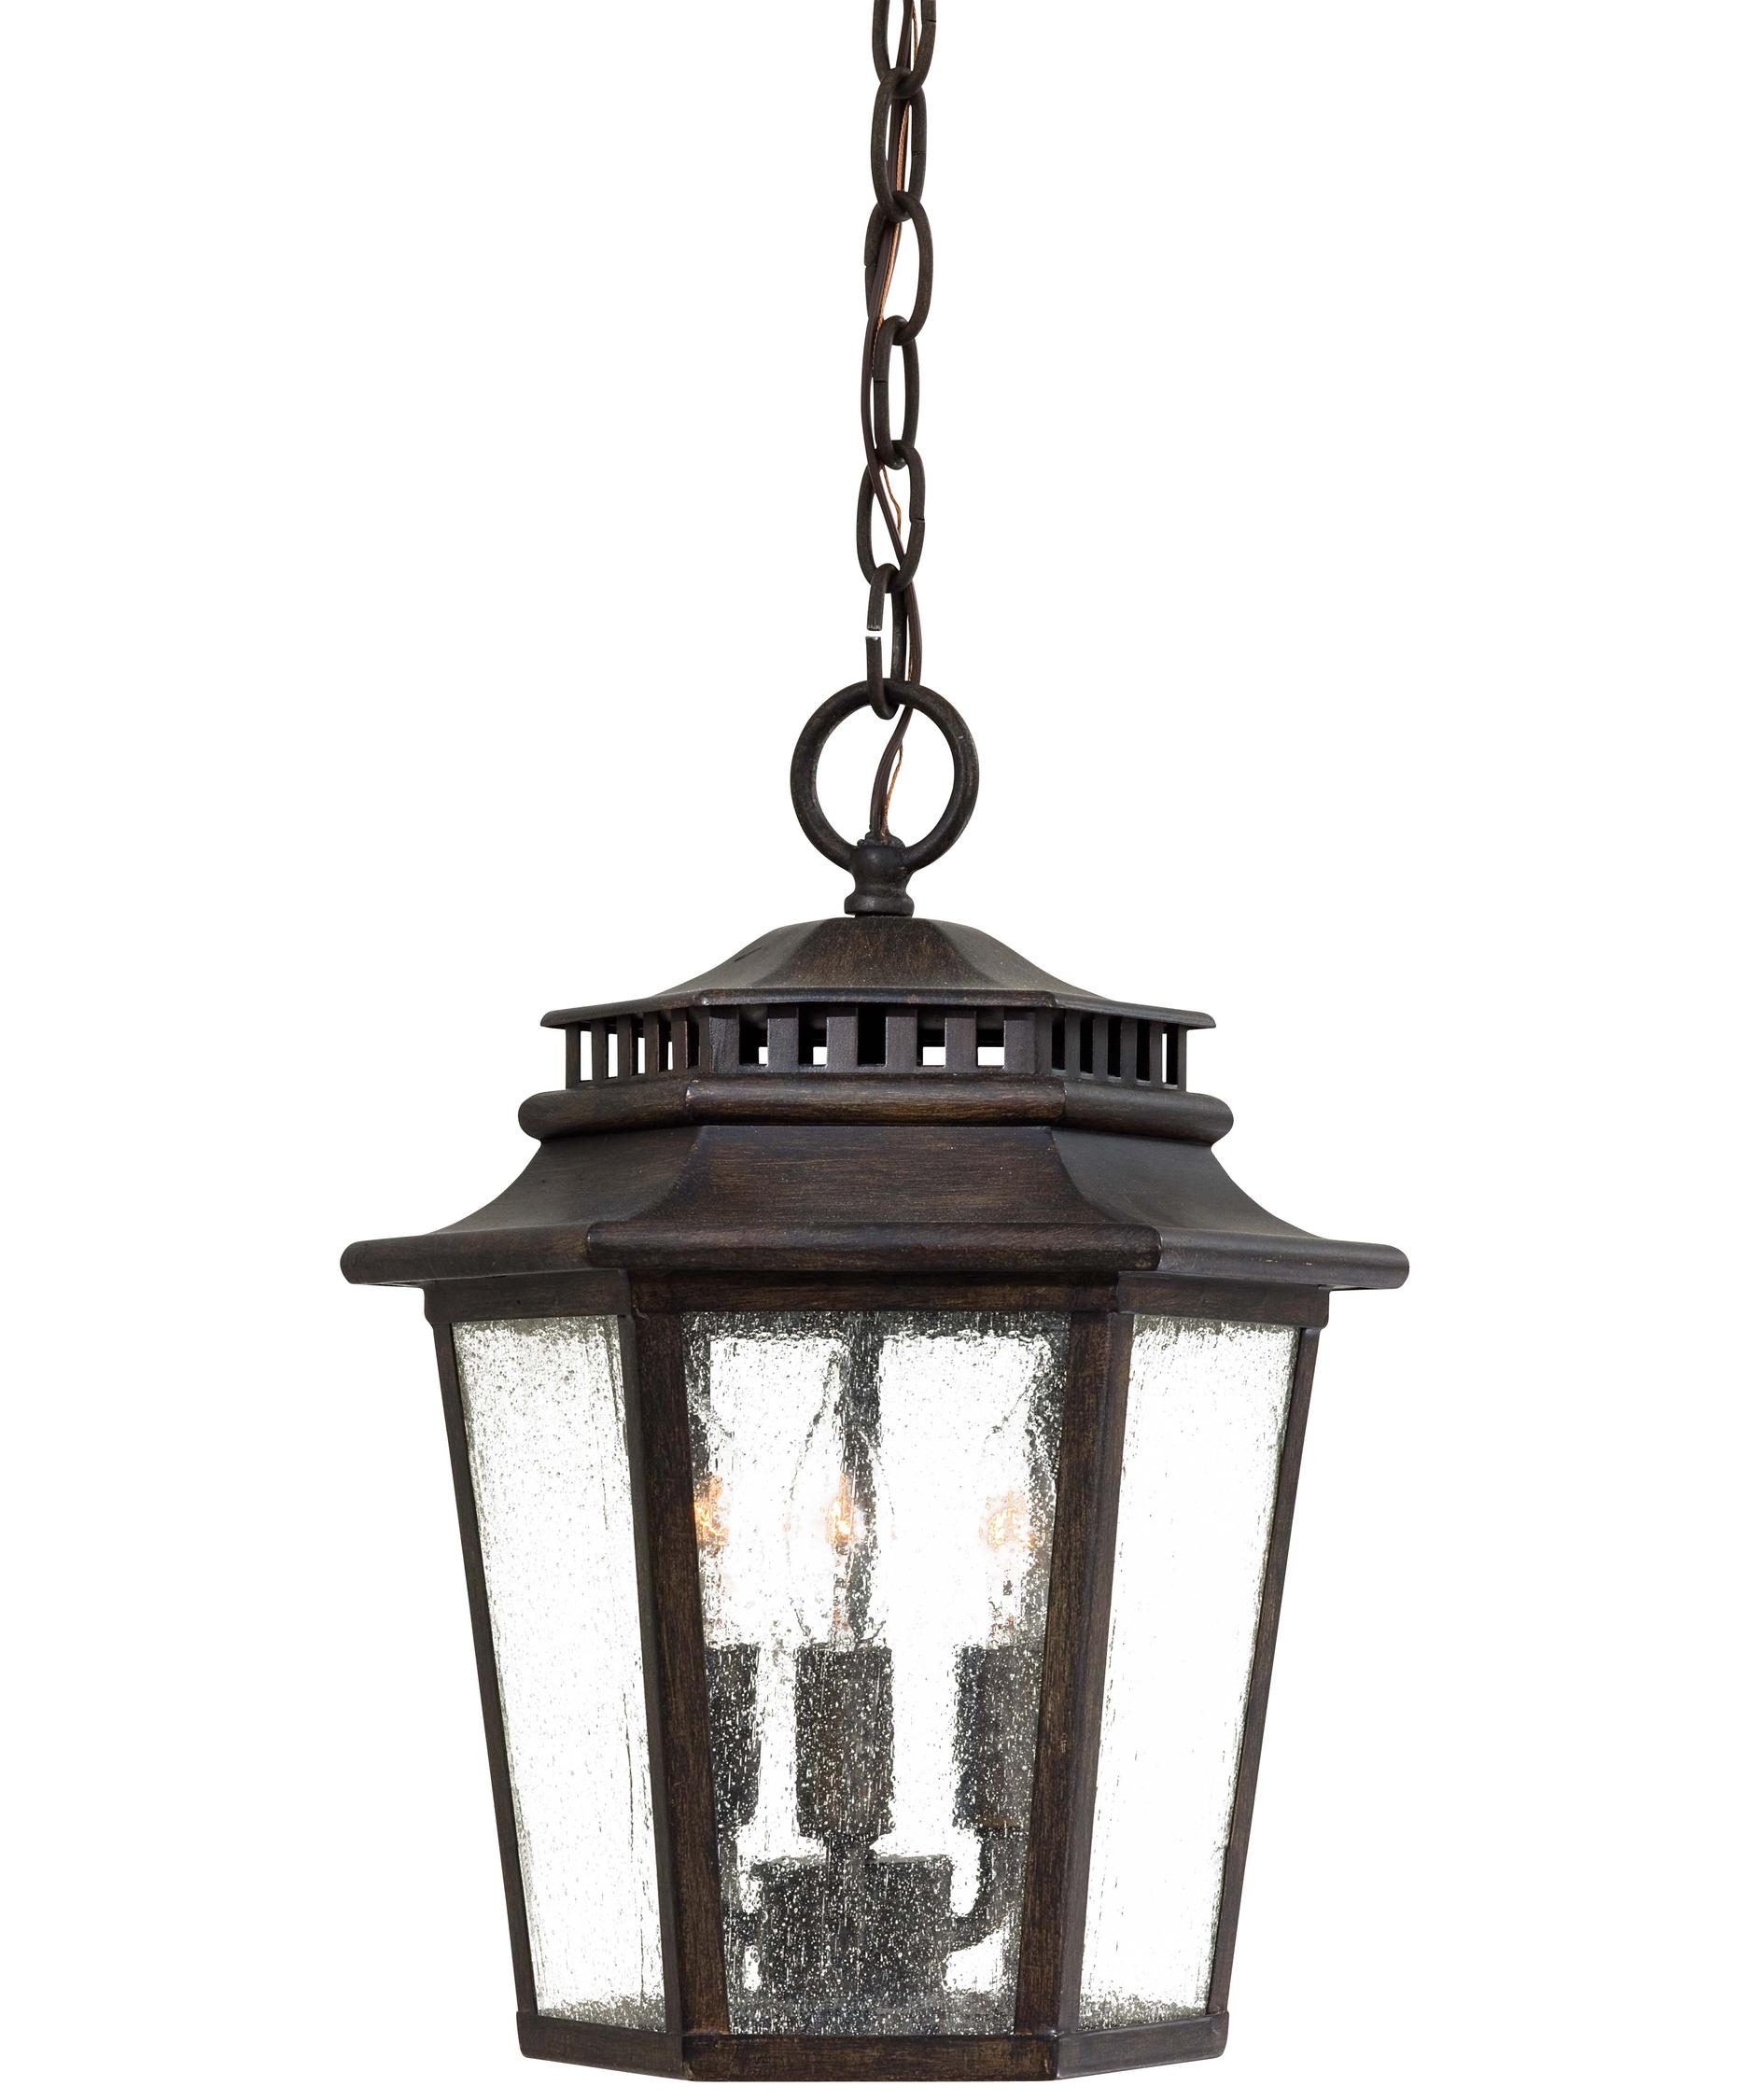 Minka Lavery 8274 Wickford Bay 11 Inch Wide 3 Light Outdoor Hanging Lantern  | Capitol Lighting 1 800lighting.com